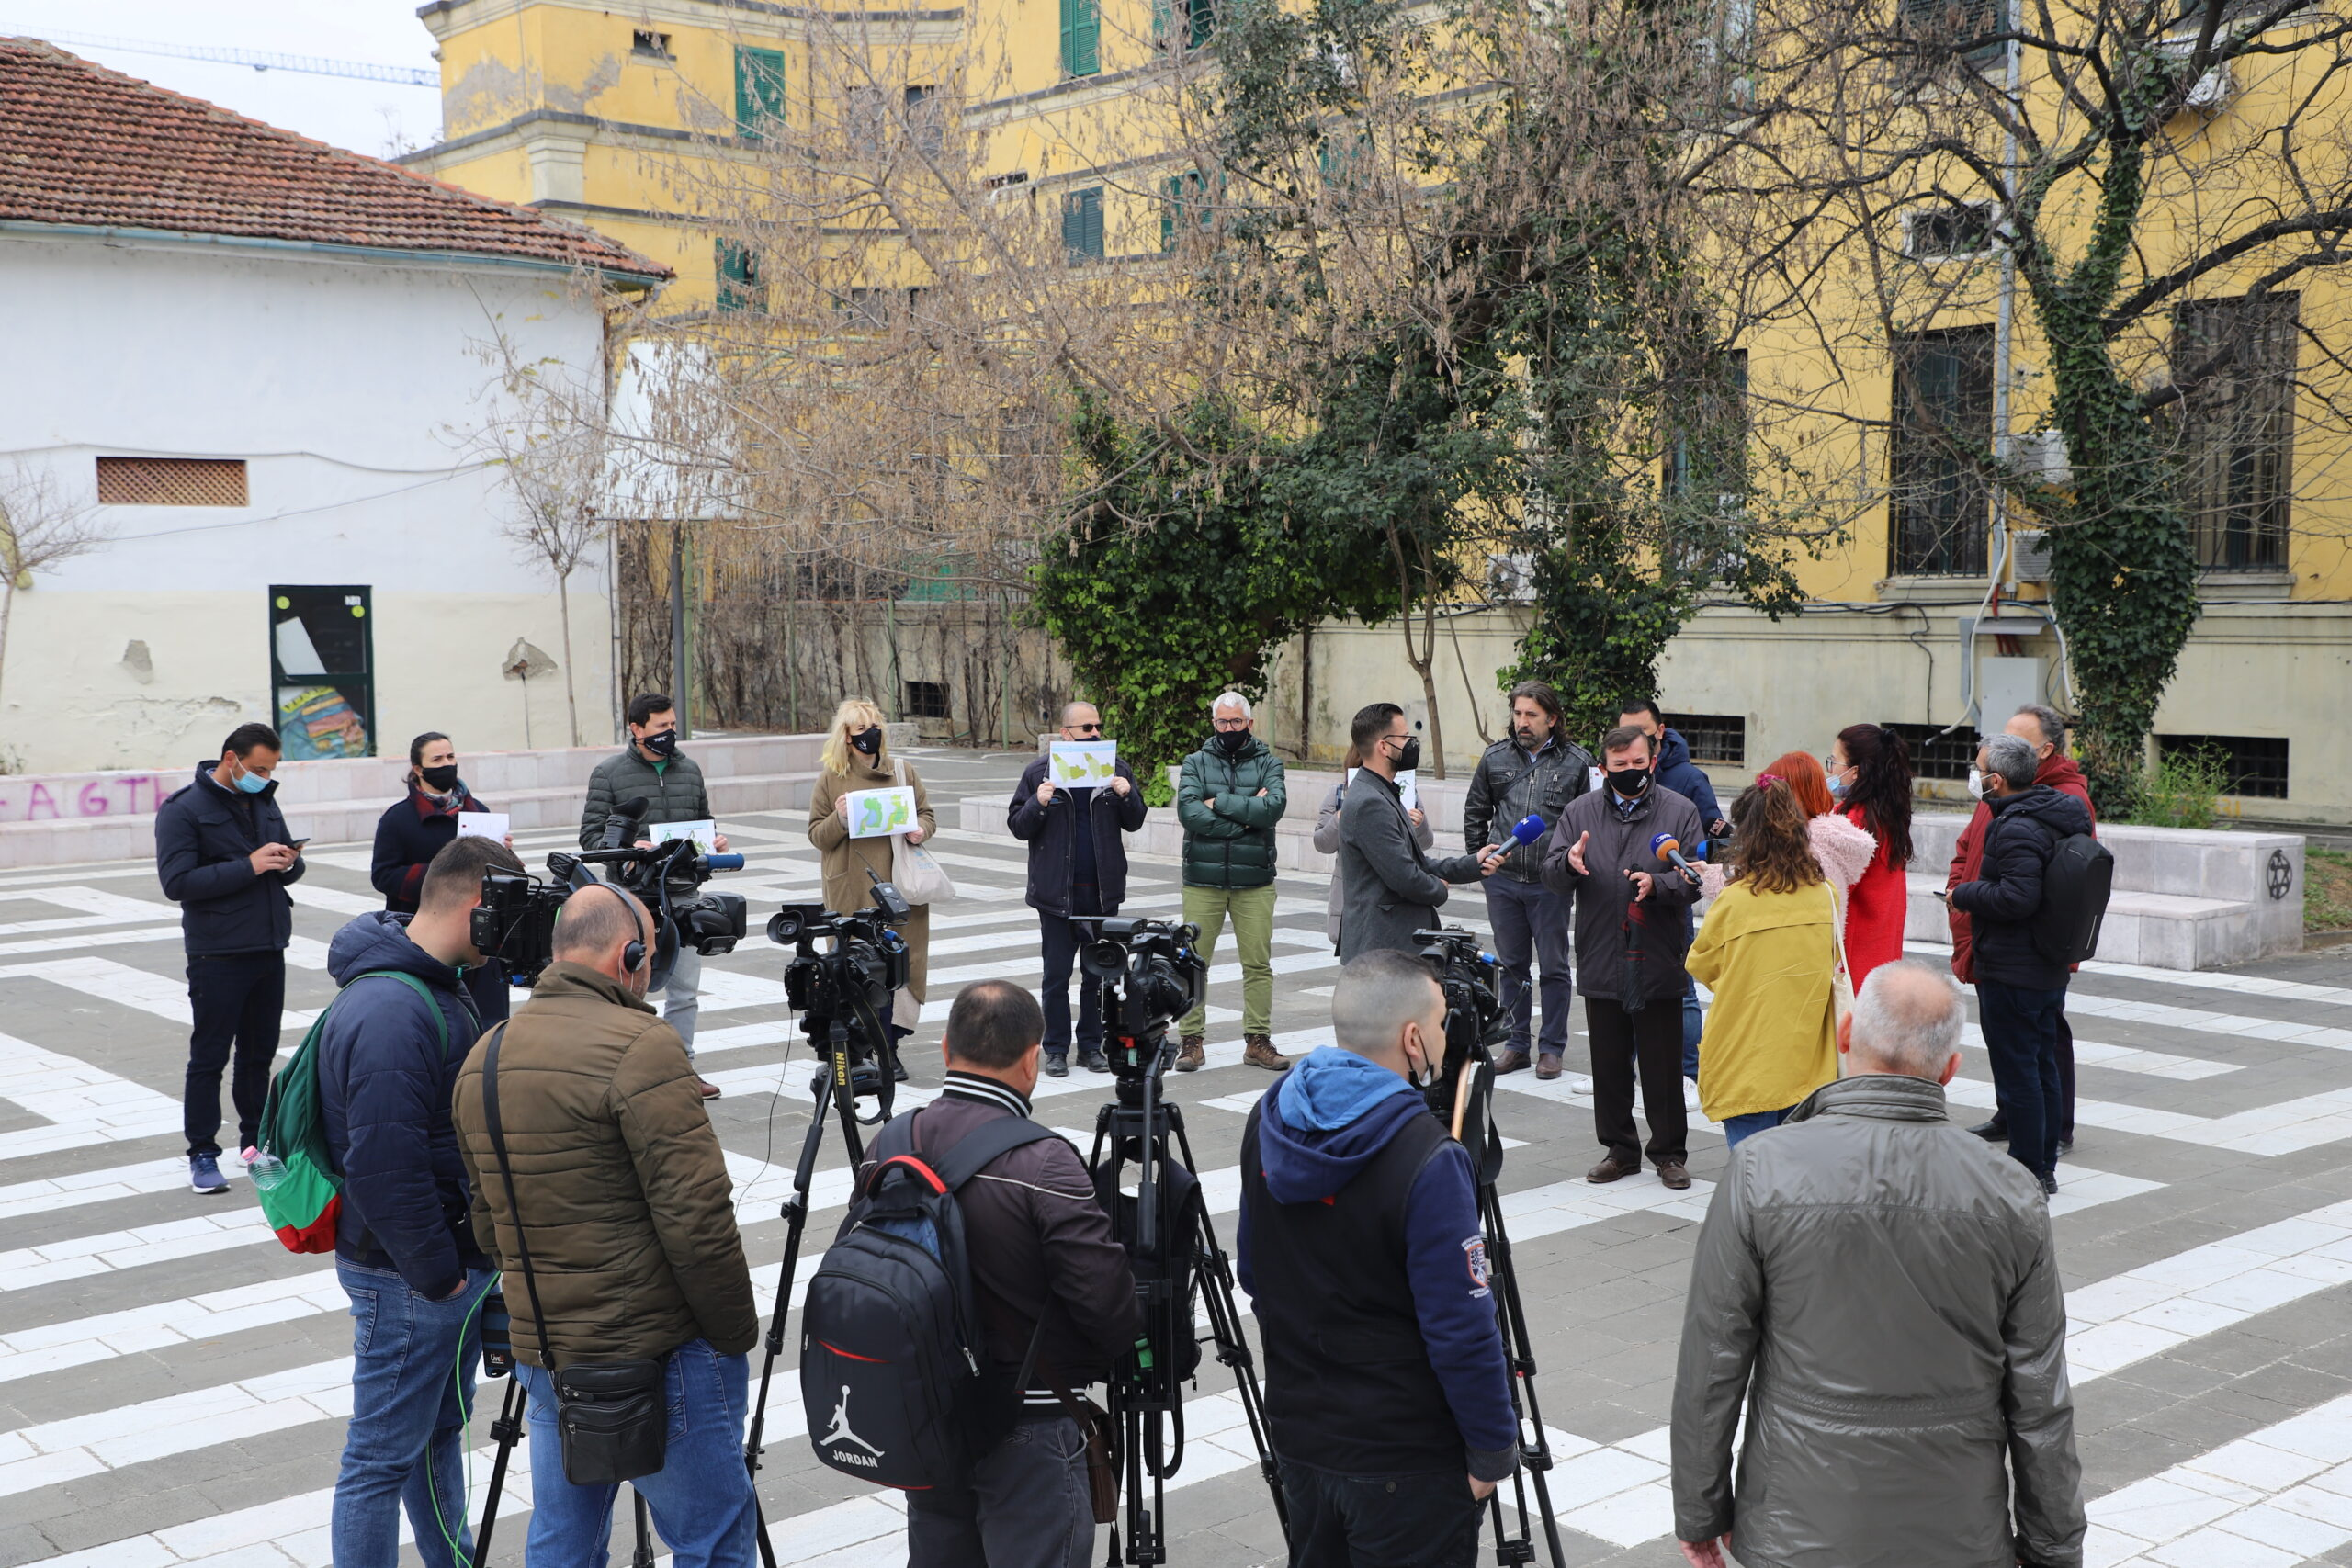 Protected Areas in Albania are threatened in order to pave the way for infrastructure projects